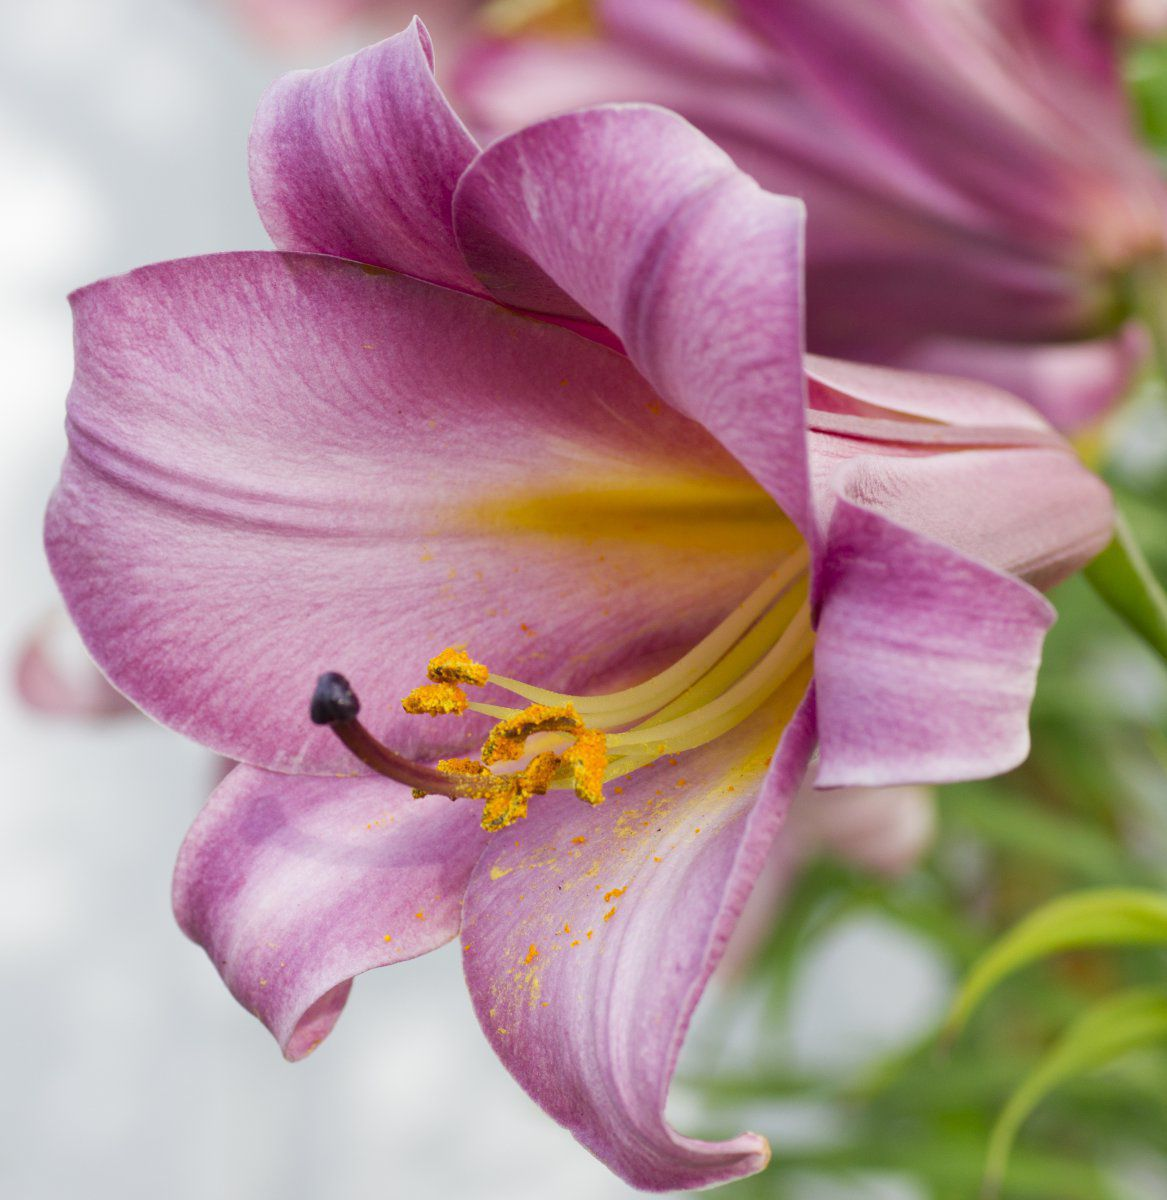 2016-07-04 Trumpet Lily 'Pink Perfection' (close-up, side-view).jpg